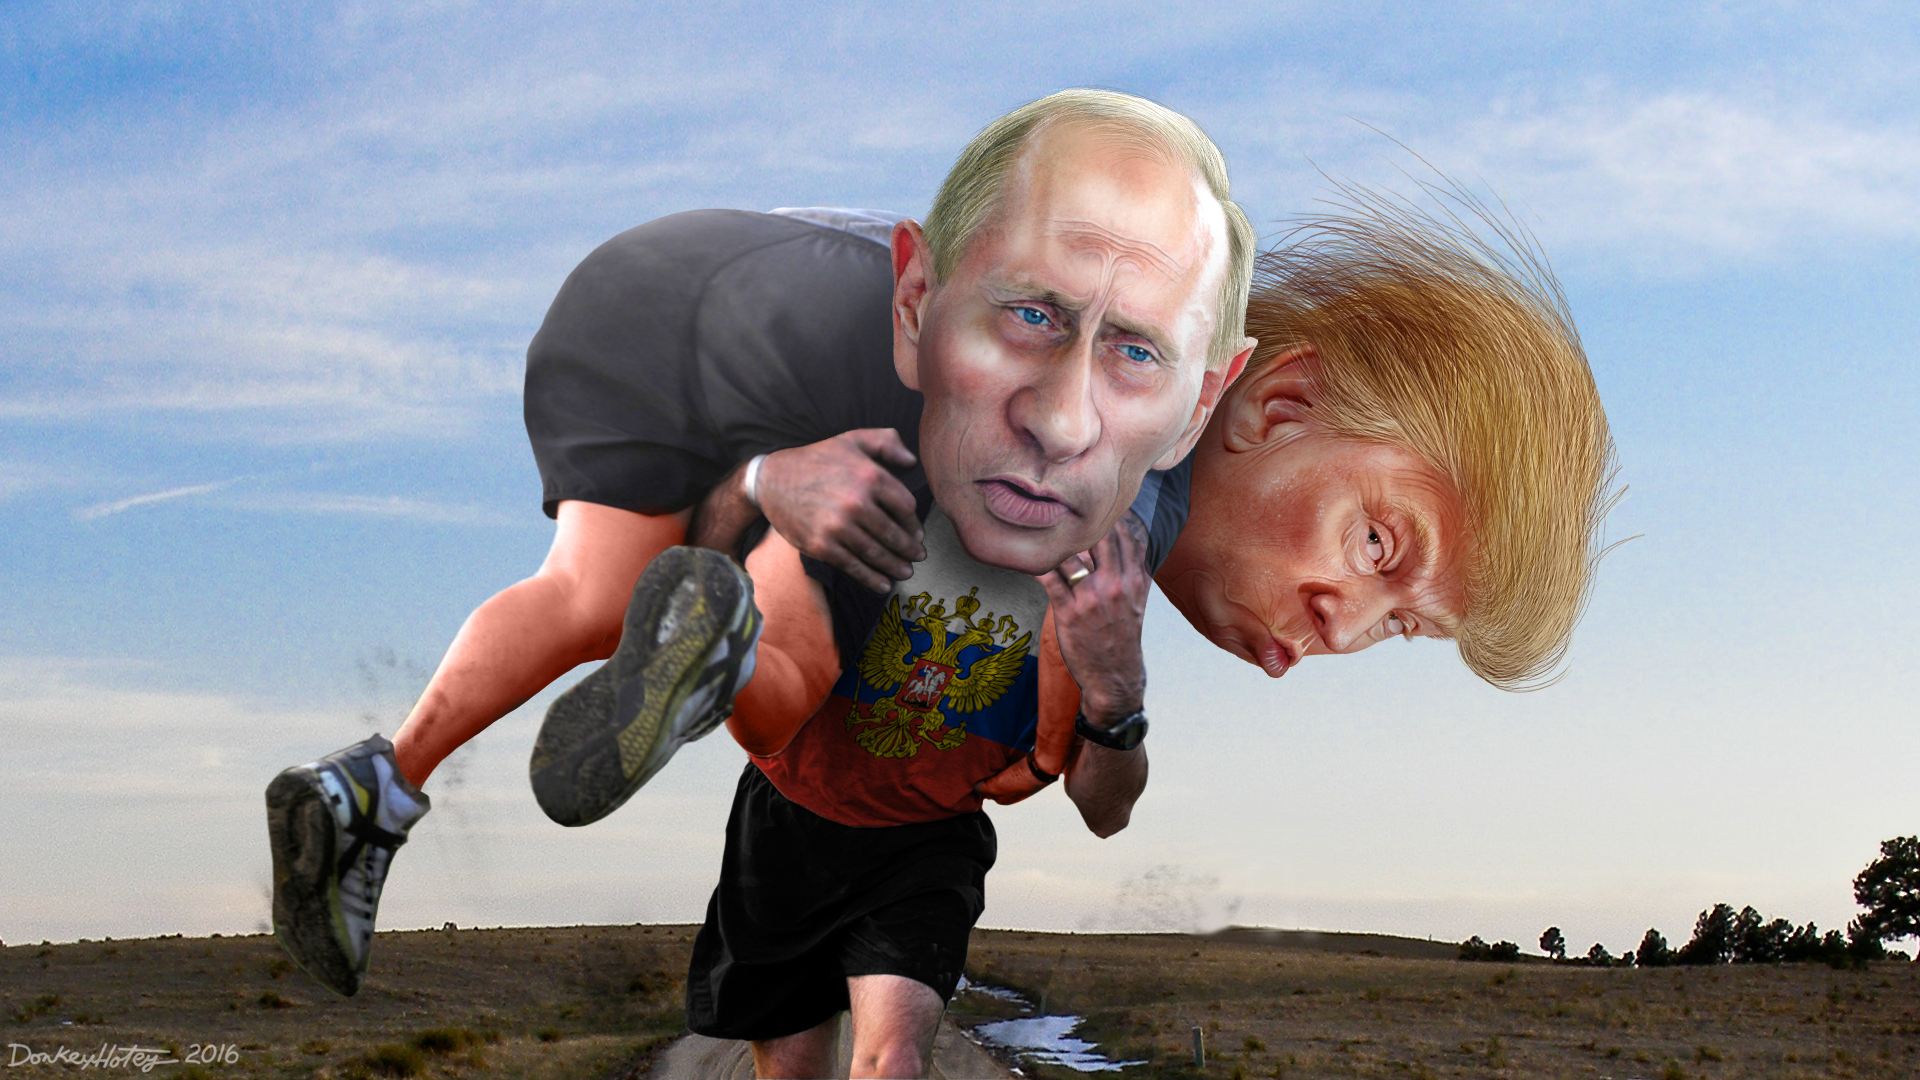 Putin helping Trump win the race for president. (DonkeyHotey via Flickr)